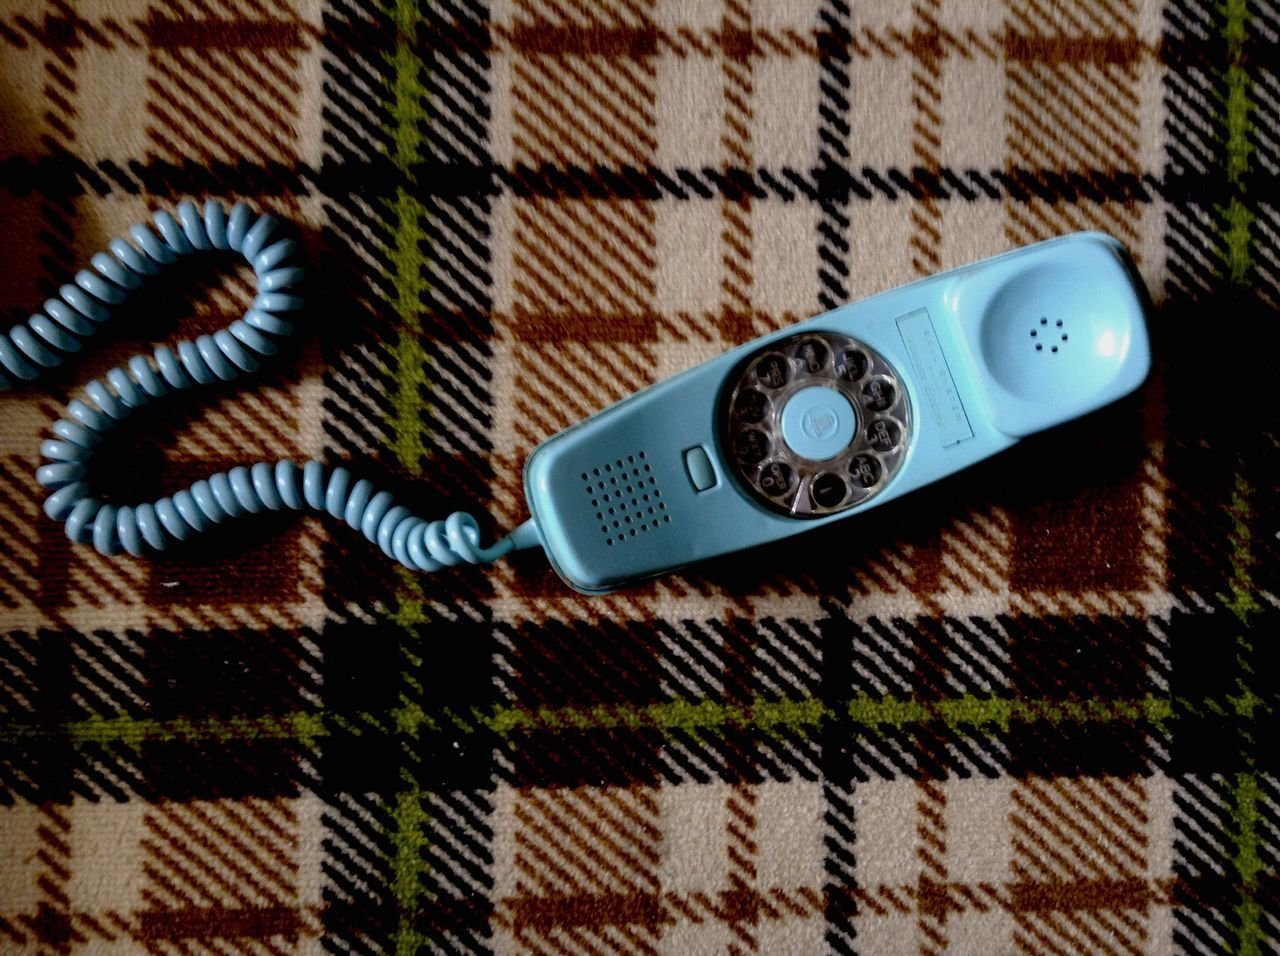 -Can You Hear Me Now?- Urban 4 Filter 1960 Phone Vintage A Point Of Irony During The Week Isn't Bad Smart Simplicity Shaping The Future. Together.